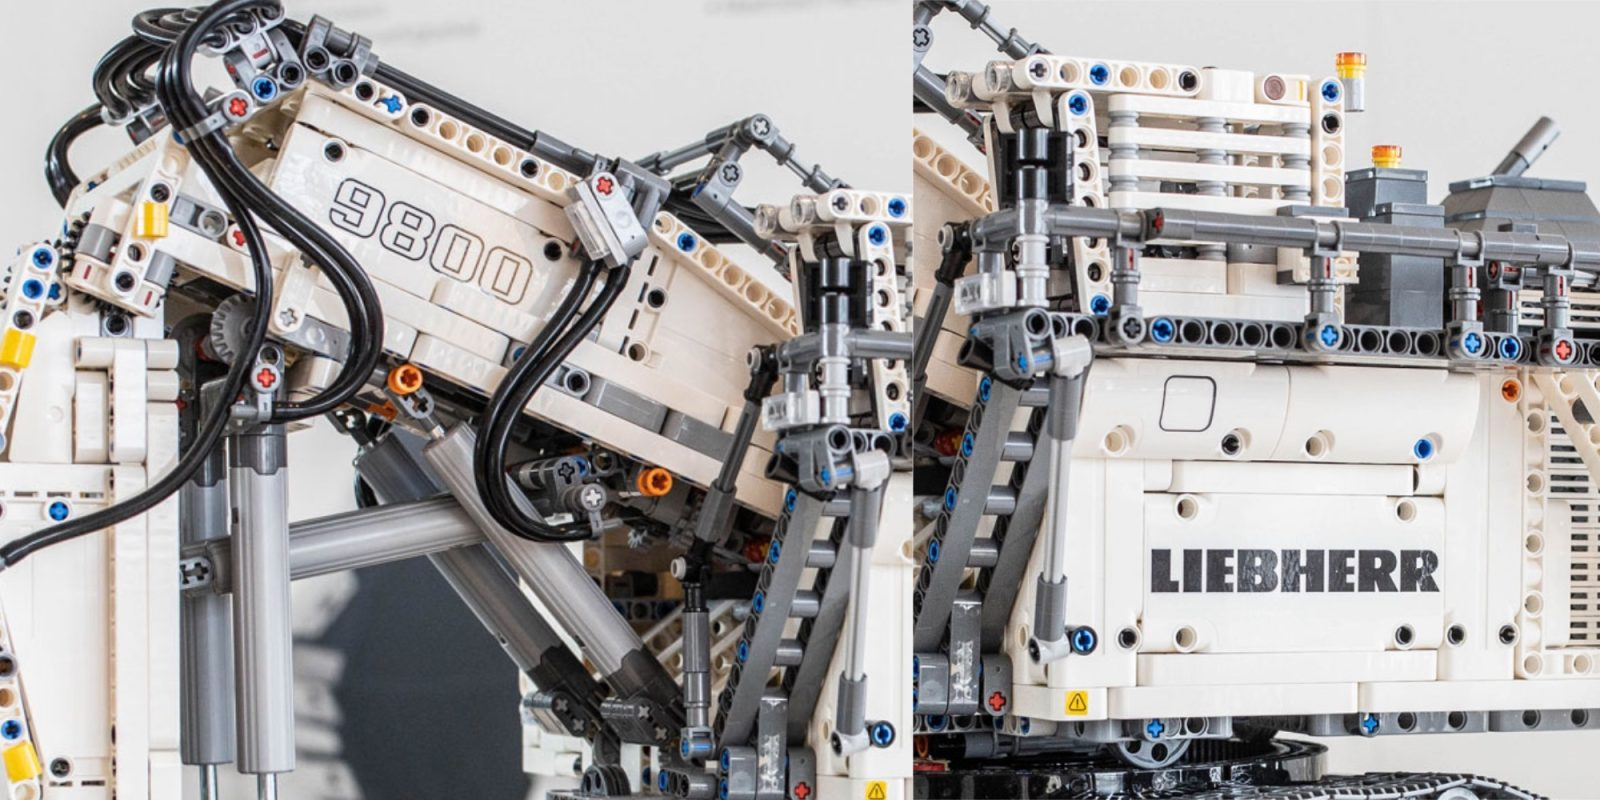 LEGO Technic Liebherr 9800 assembles 7th largest set to date - 9to5Toys